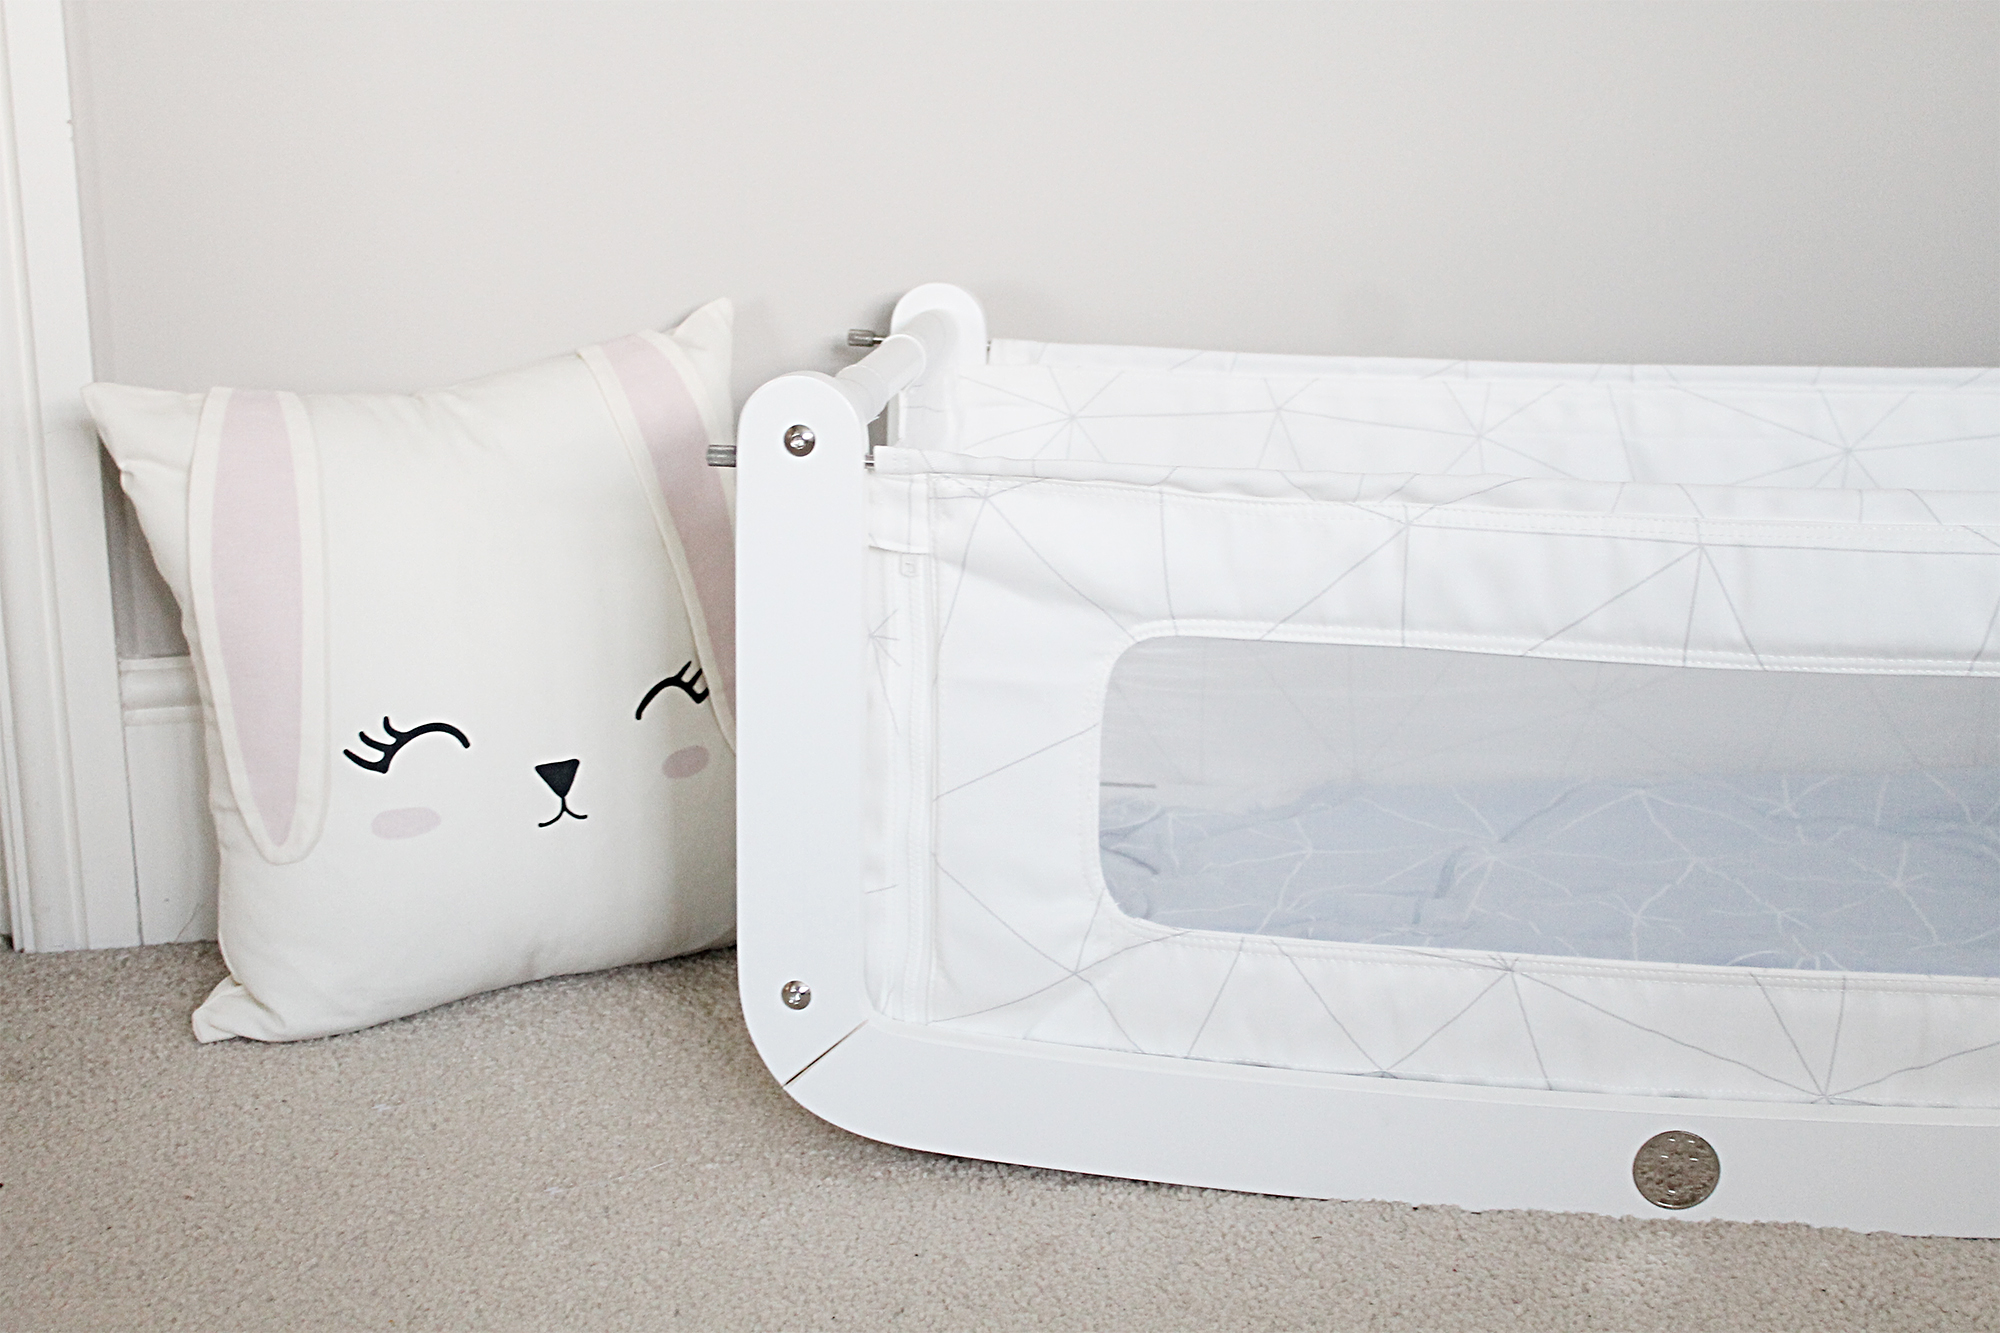 White SnuzPod baby bed on the floor next to a white pillow designed to look like a rabbits head